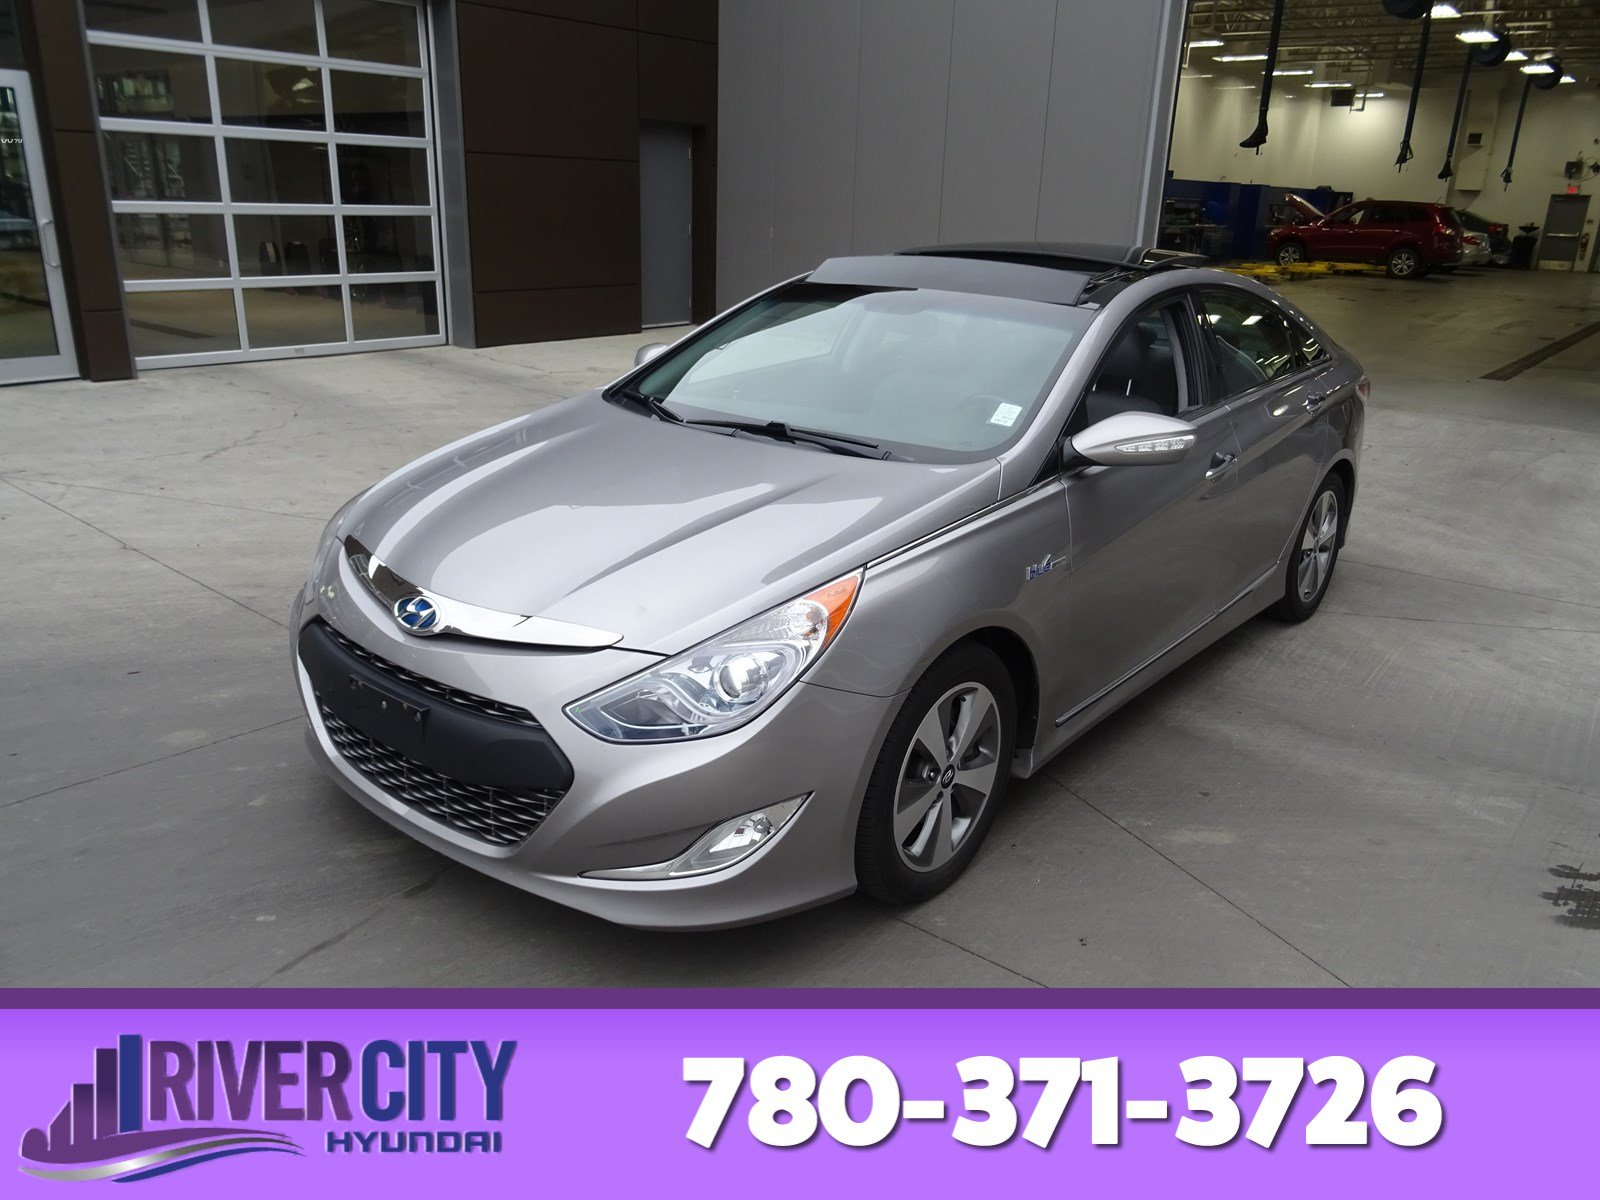 Photo Pre-Owned 2012 Hyundai Sonata LIMITED HYBRID Navigation GPS, Leather, Heated Seats, Panoramic Roof, Back-up Cam, Bluetooth,